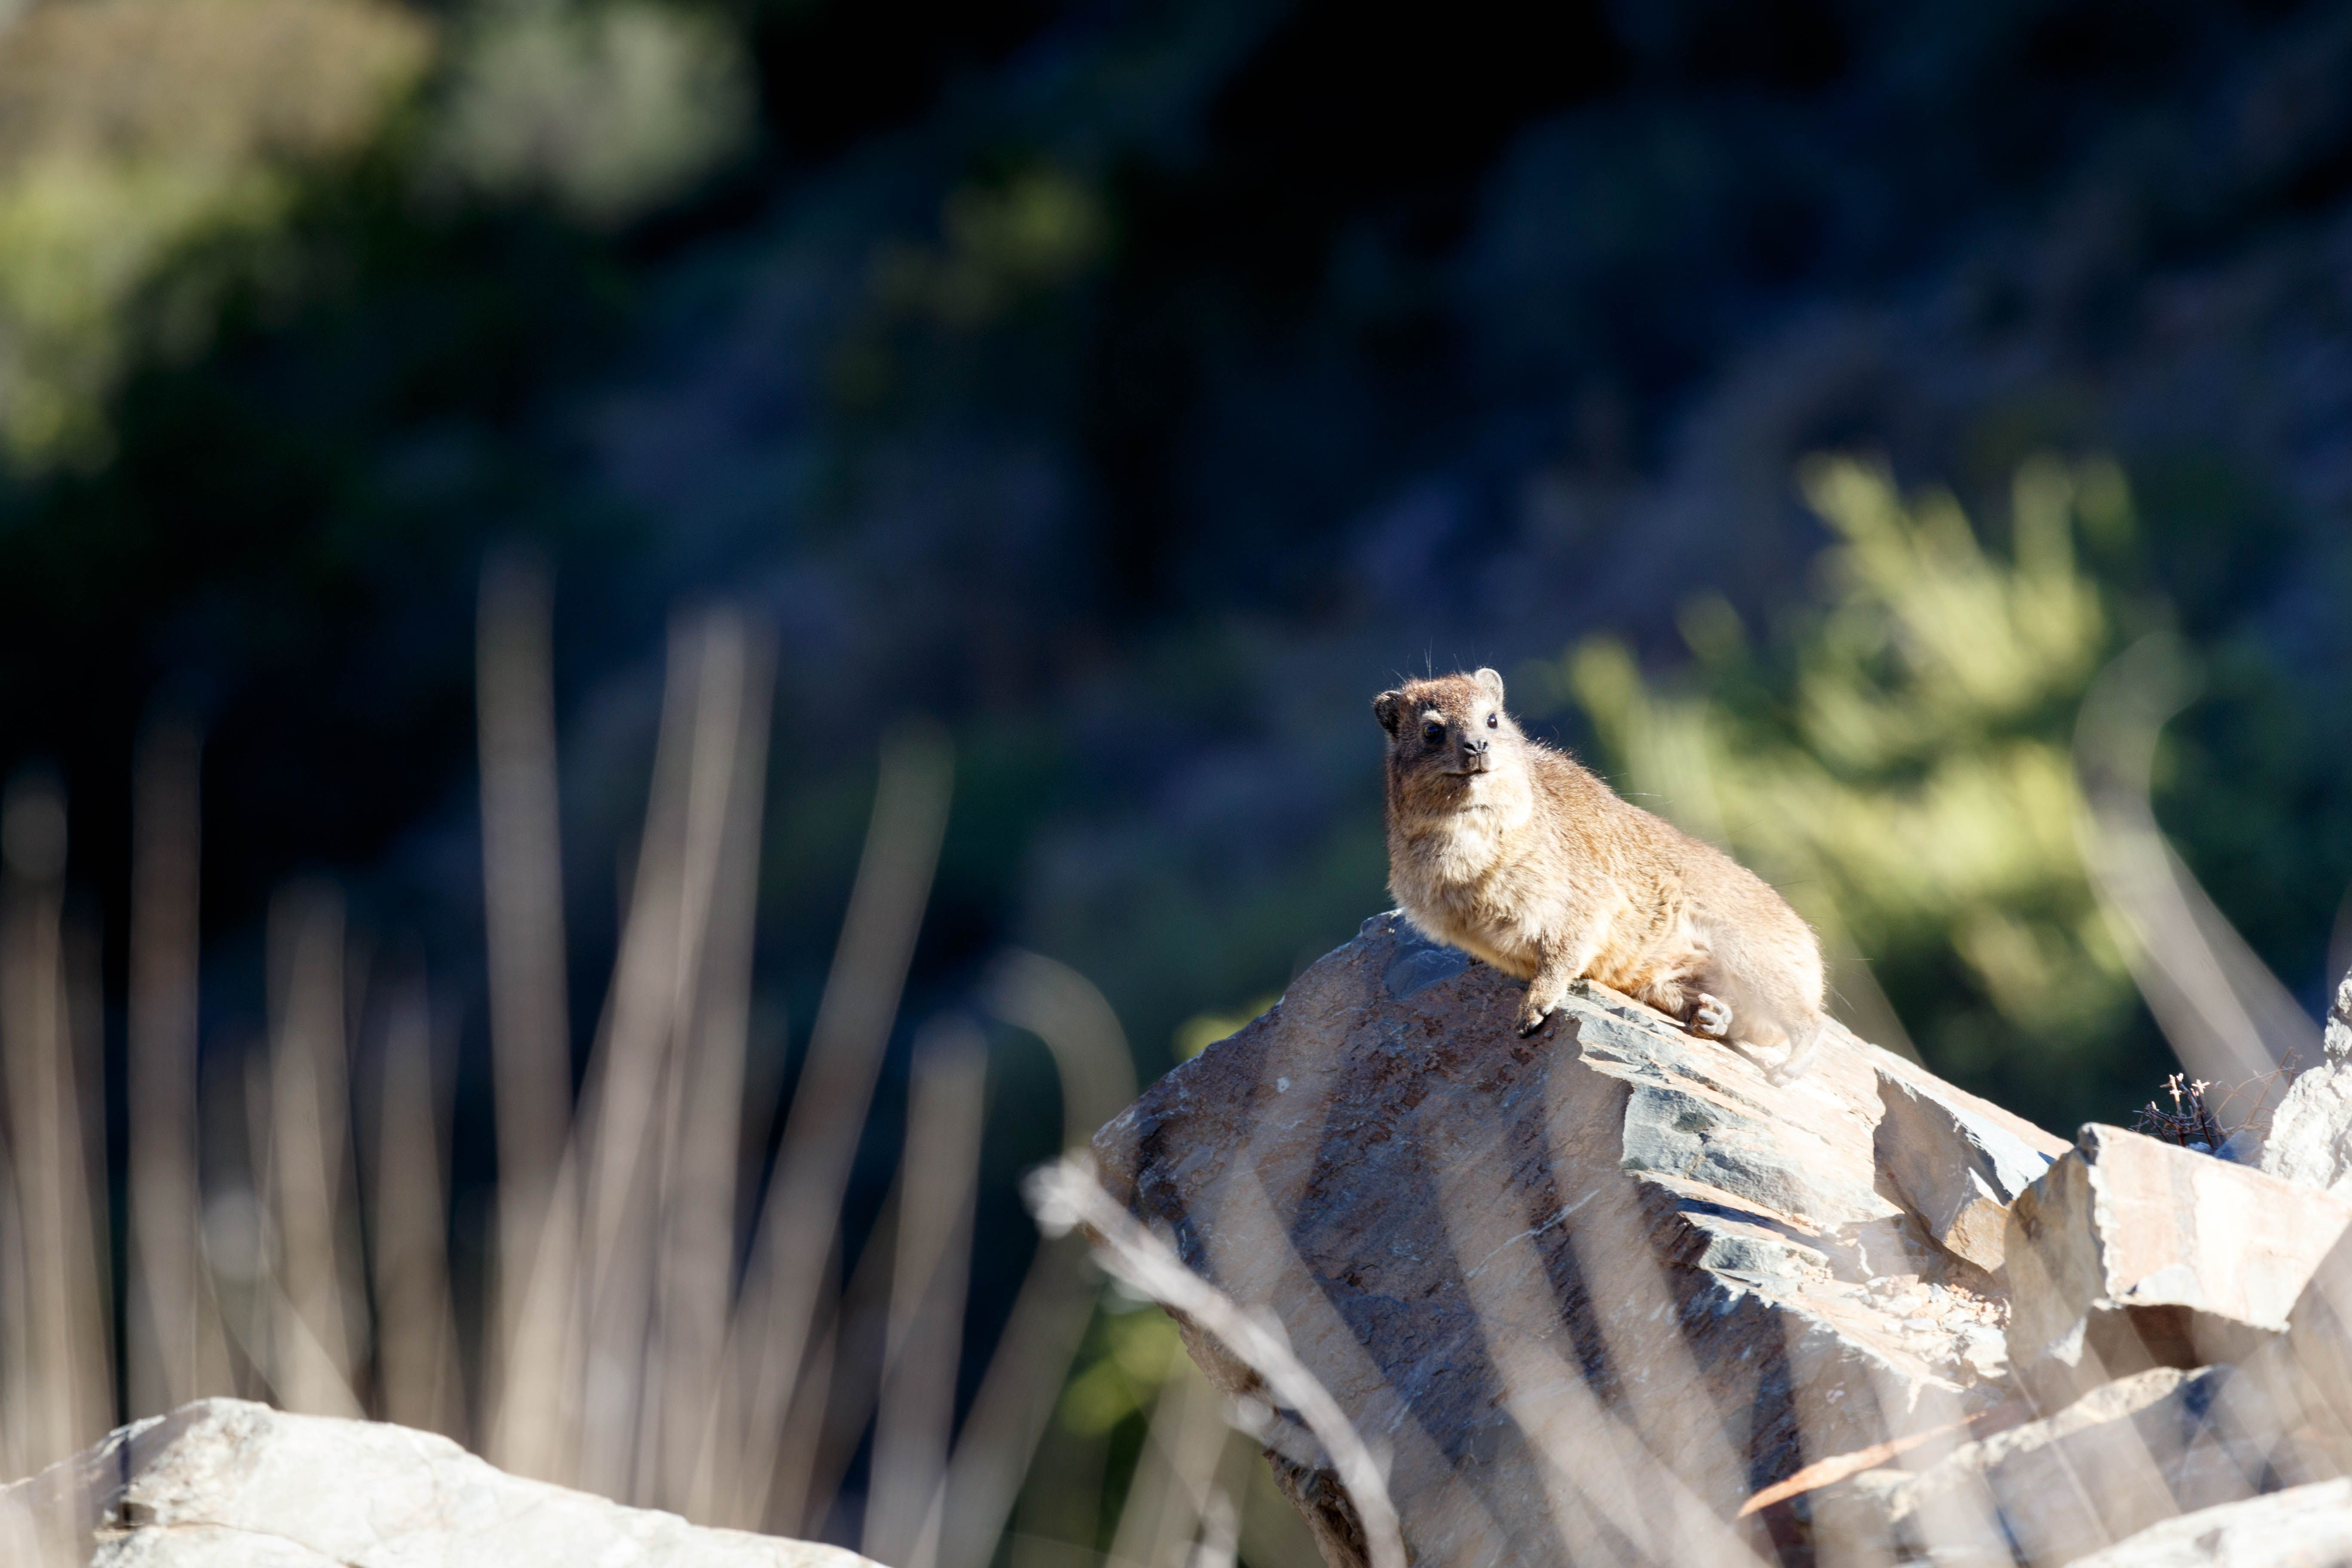 Dassie Sitting on a Rock - Rock hyrax Dassie Sitting on a Rock - The rock hyrax or rock badger, also called the Cape hyrax and commonly referred to in South African English as the dassie, is one of the four living species of the order Hyracoidea, and the only living species in the genus Procavia